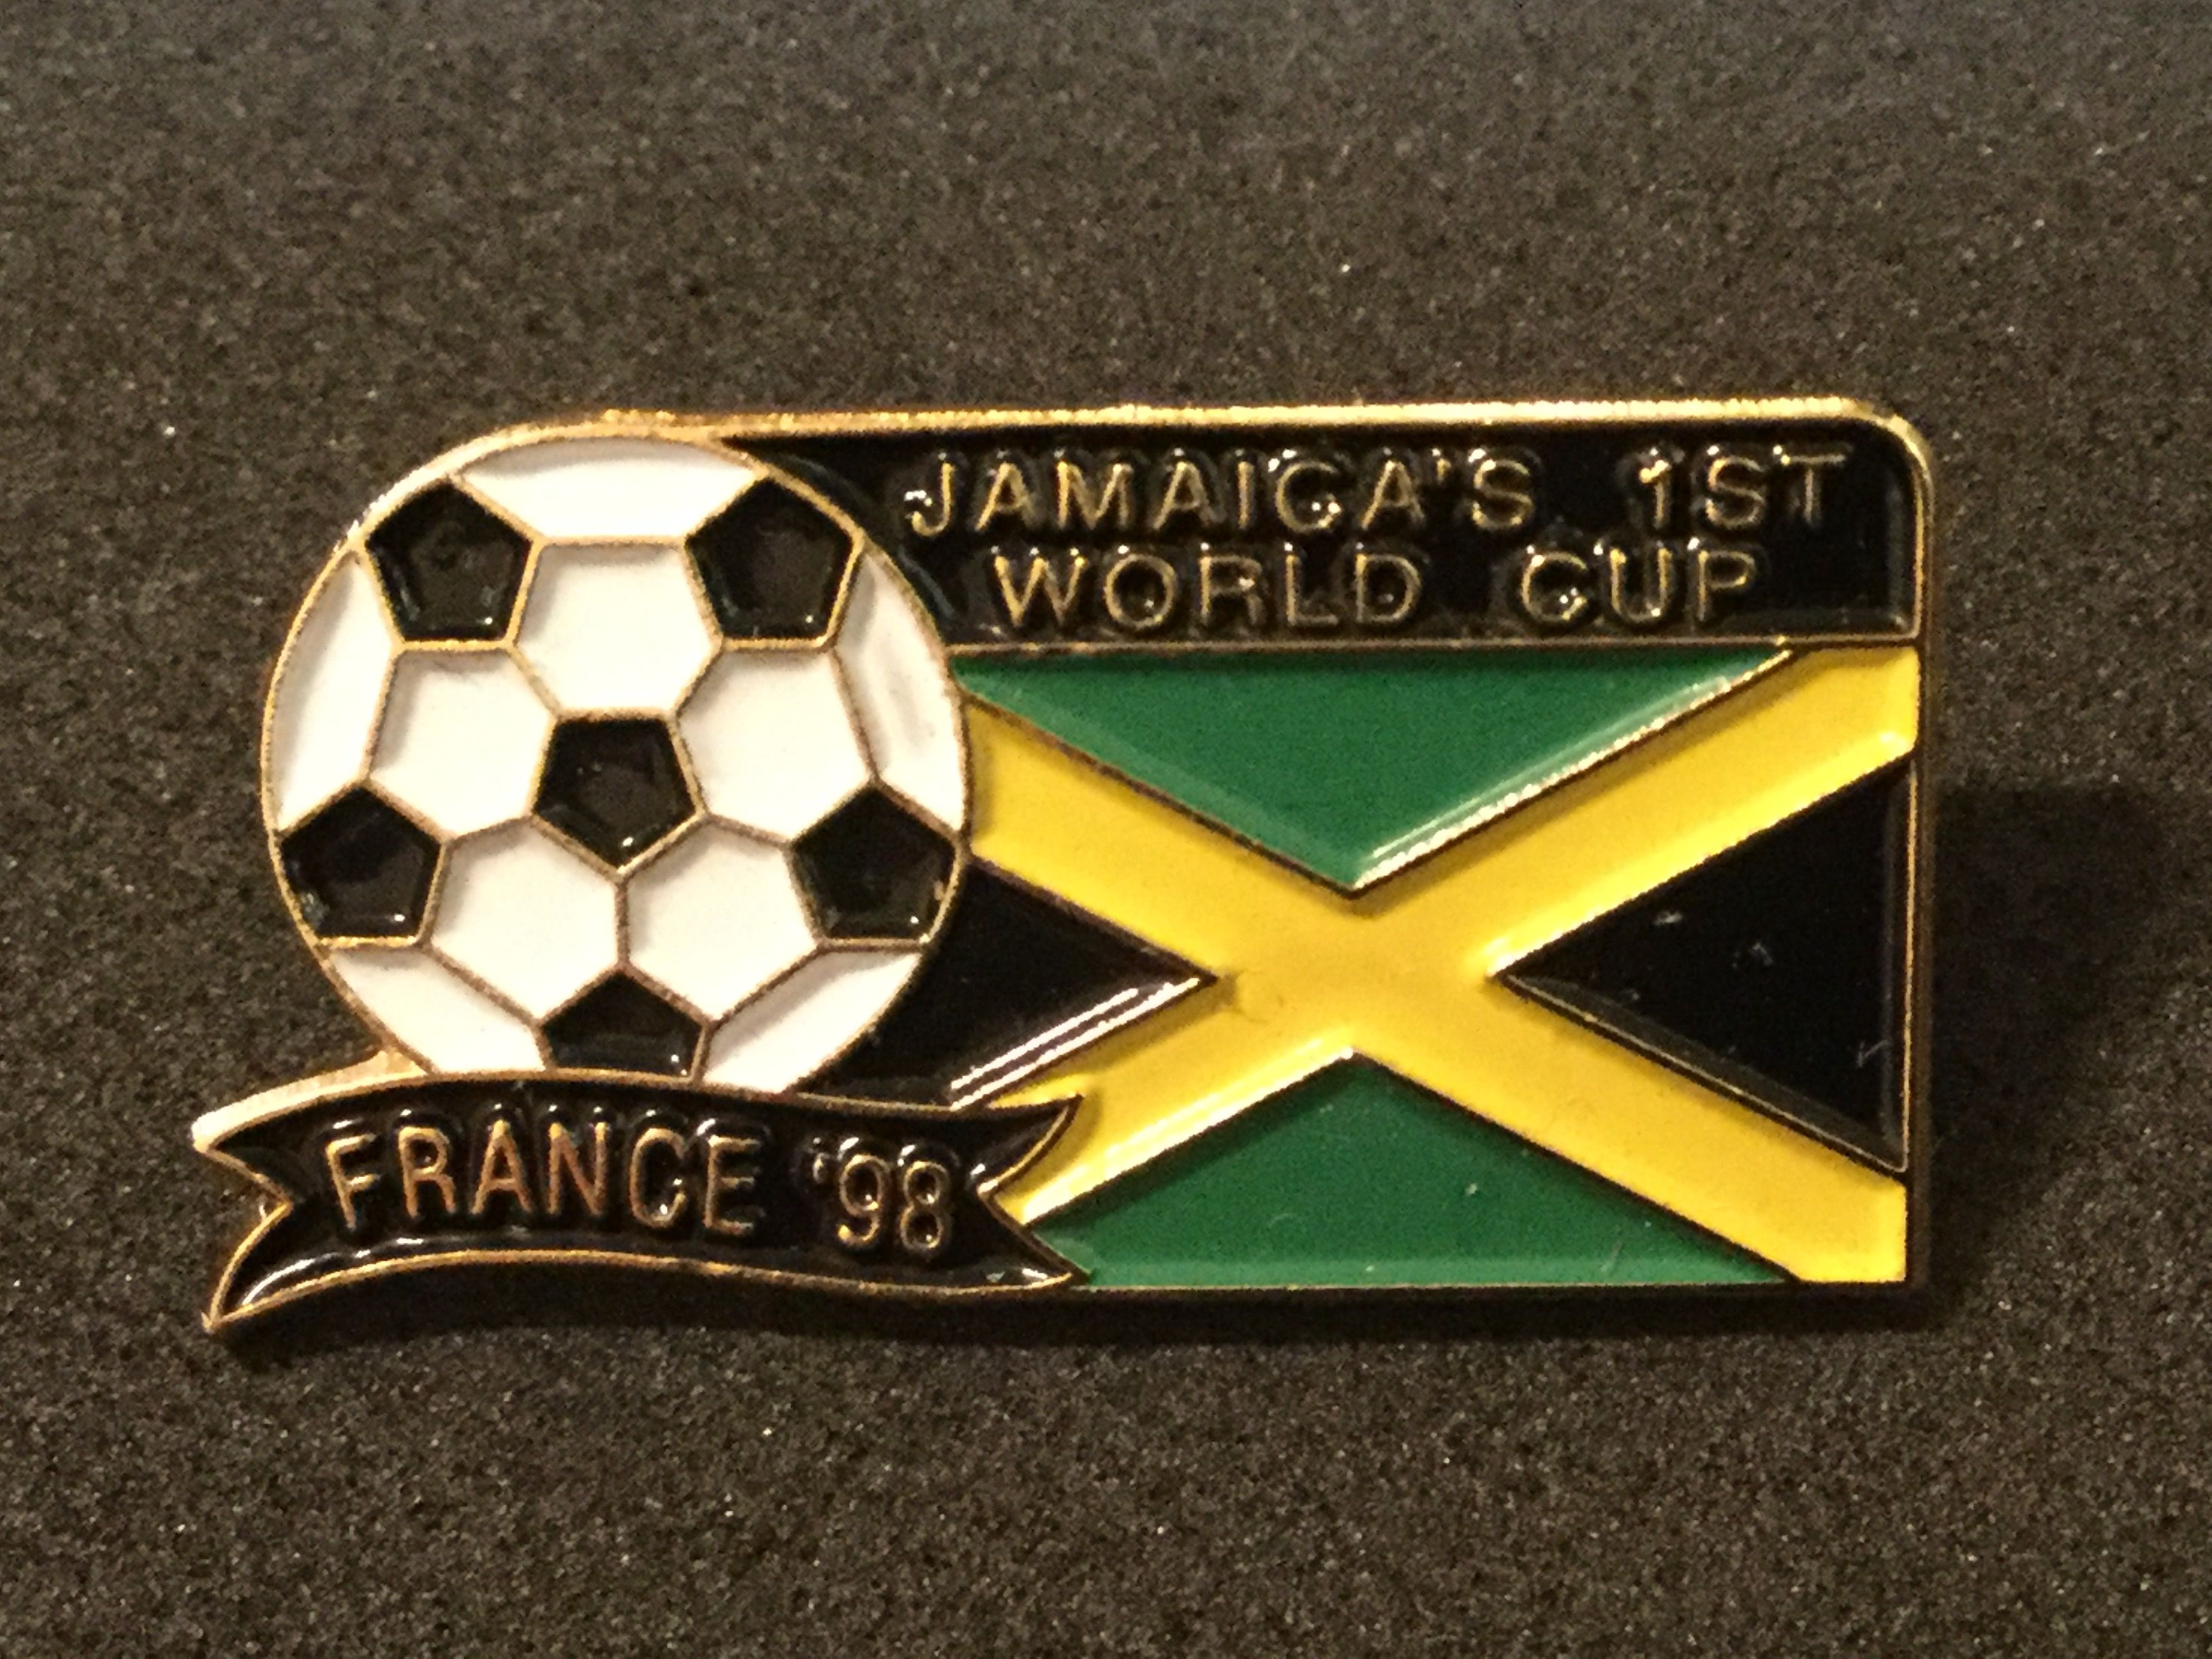 Fifa World Cup Football Soccer Collectors Pin Badges Image By Mike Mastro Fifa World Cup Pin Badges Collector Pins